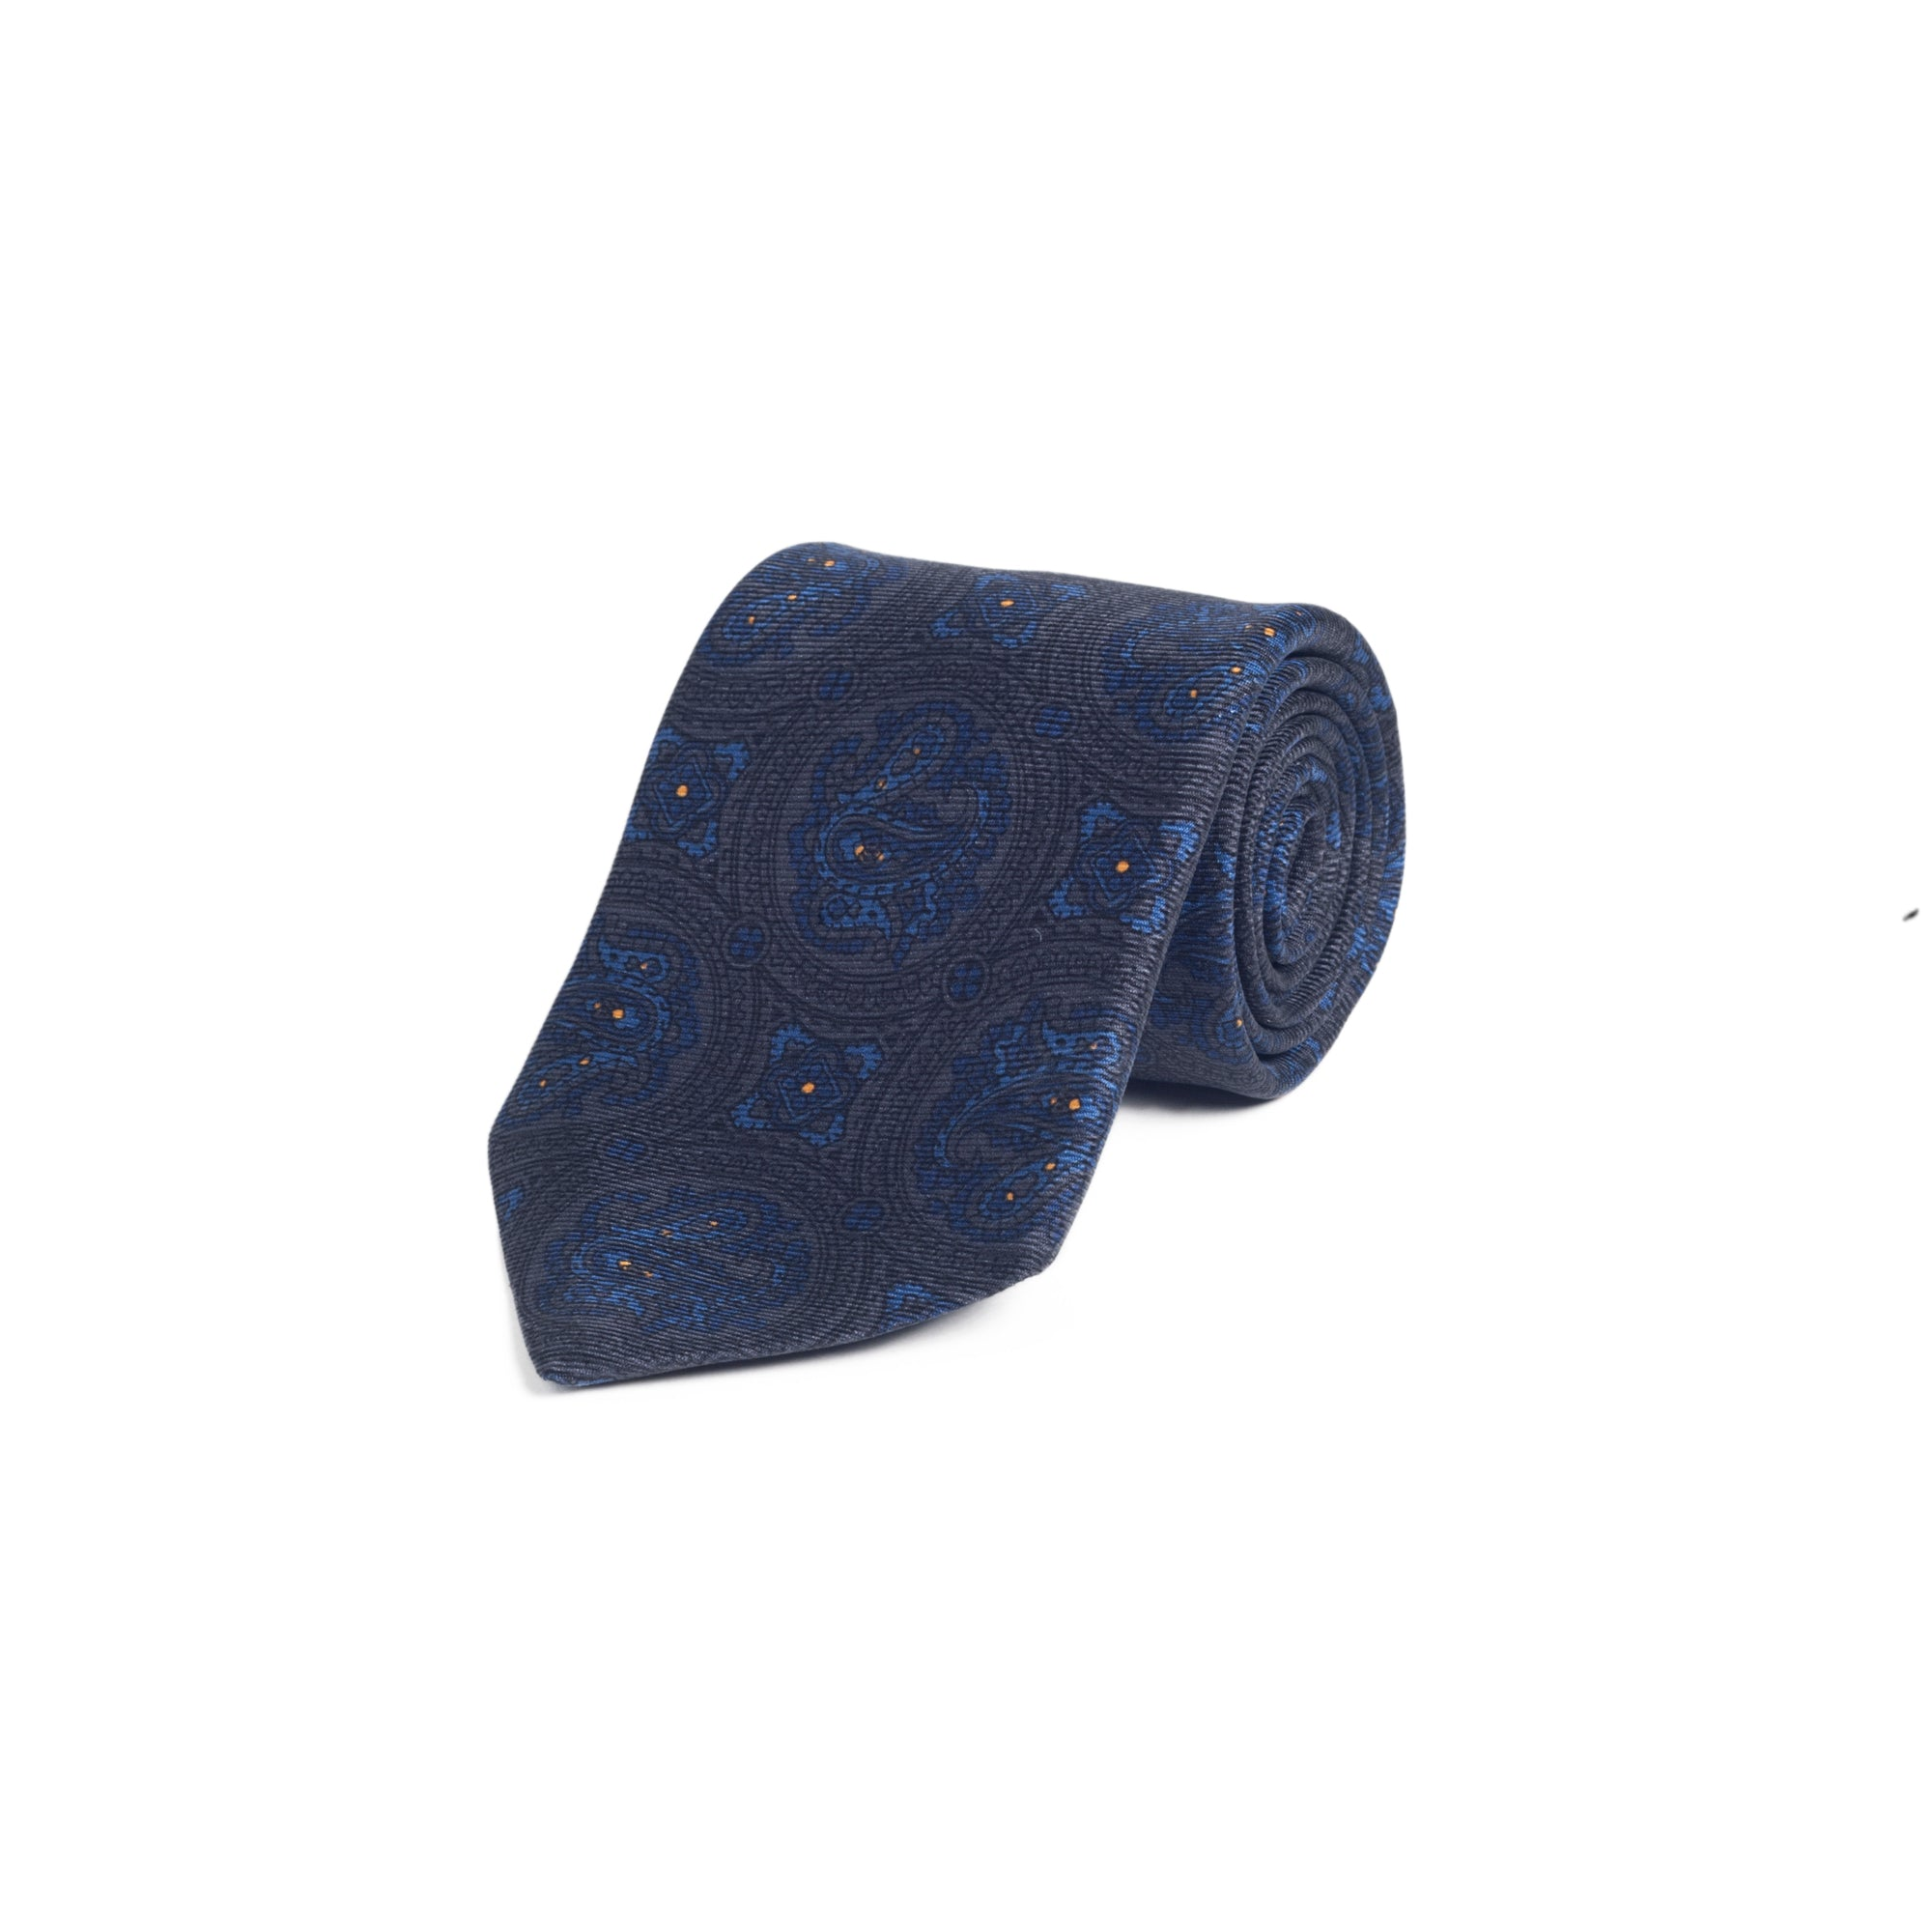 a3dcce7847202 Bronze and Blue Paisley Medallion Print Silk Tie – liverano.com